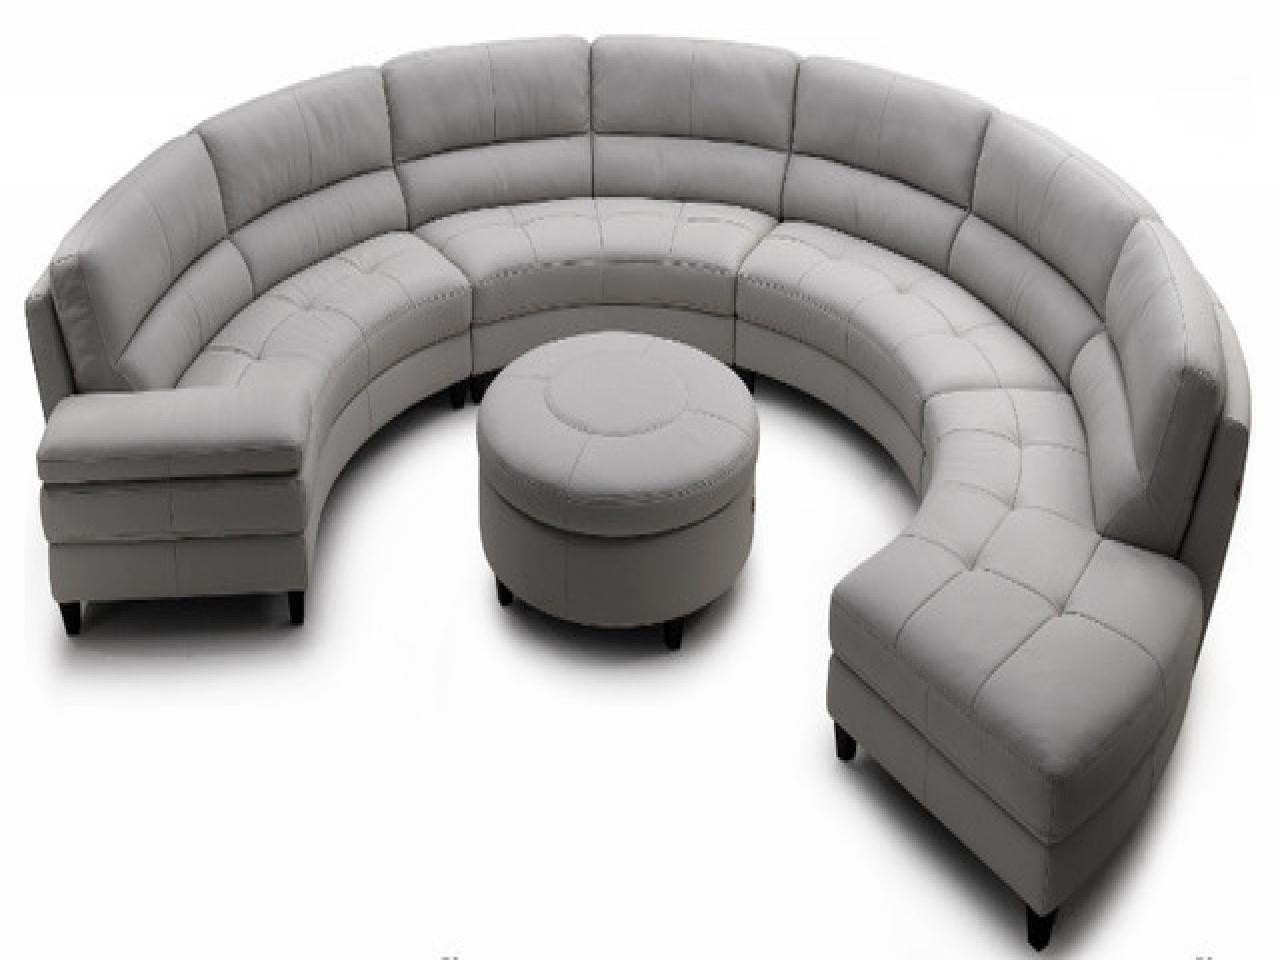 Sofas Center : Modernional Sofa Rooms Featuring Sofas Round Rare In Round Sofas (Image 17 of 20)